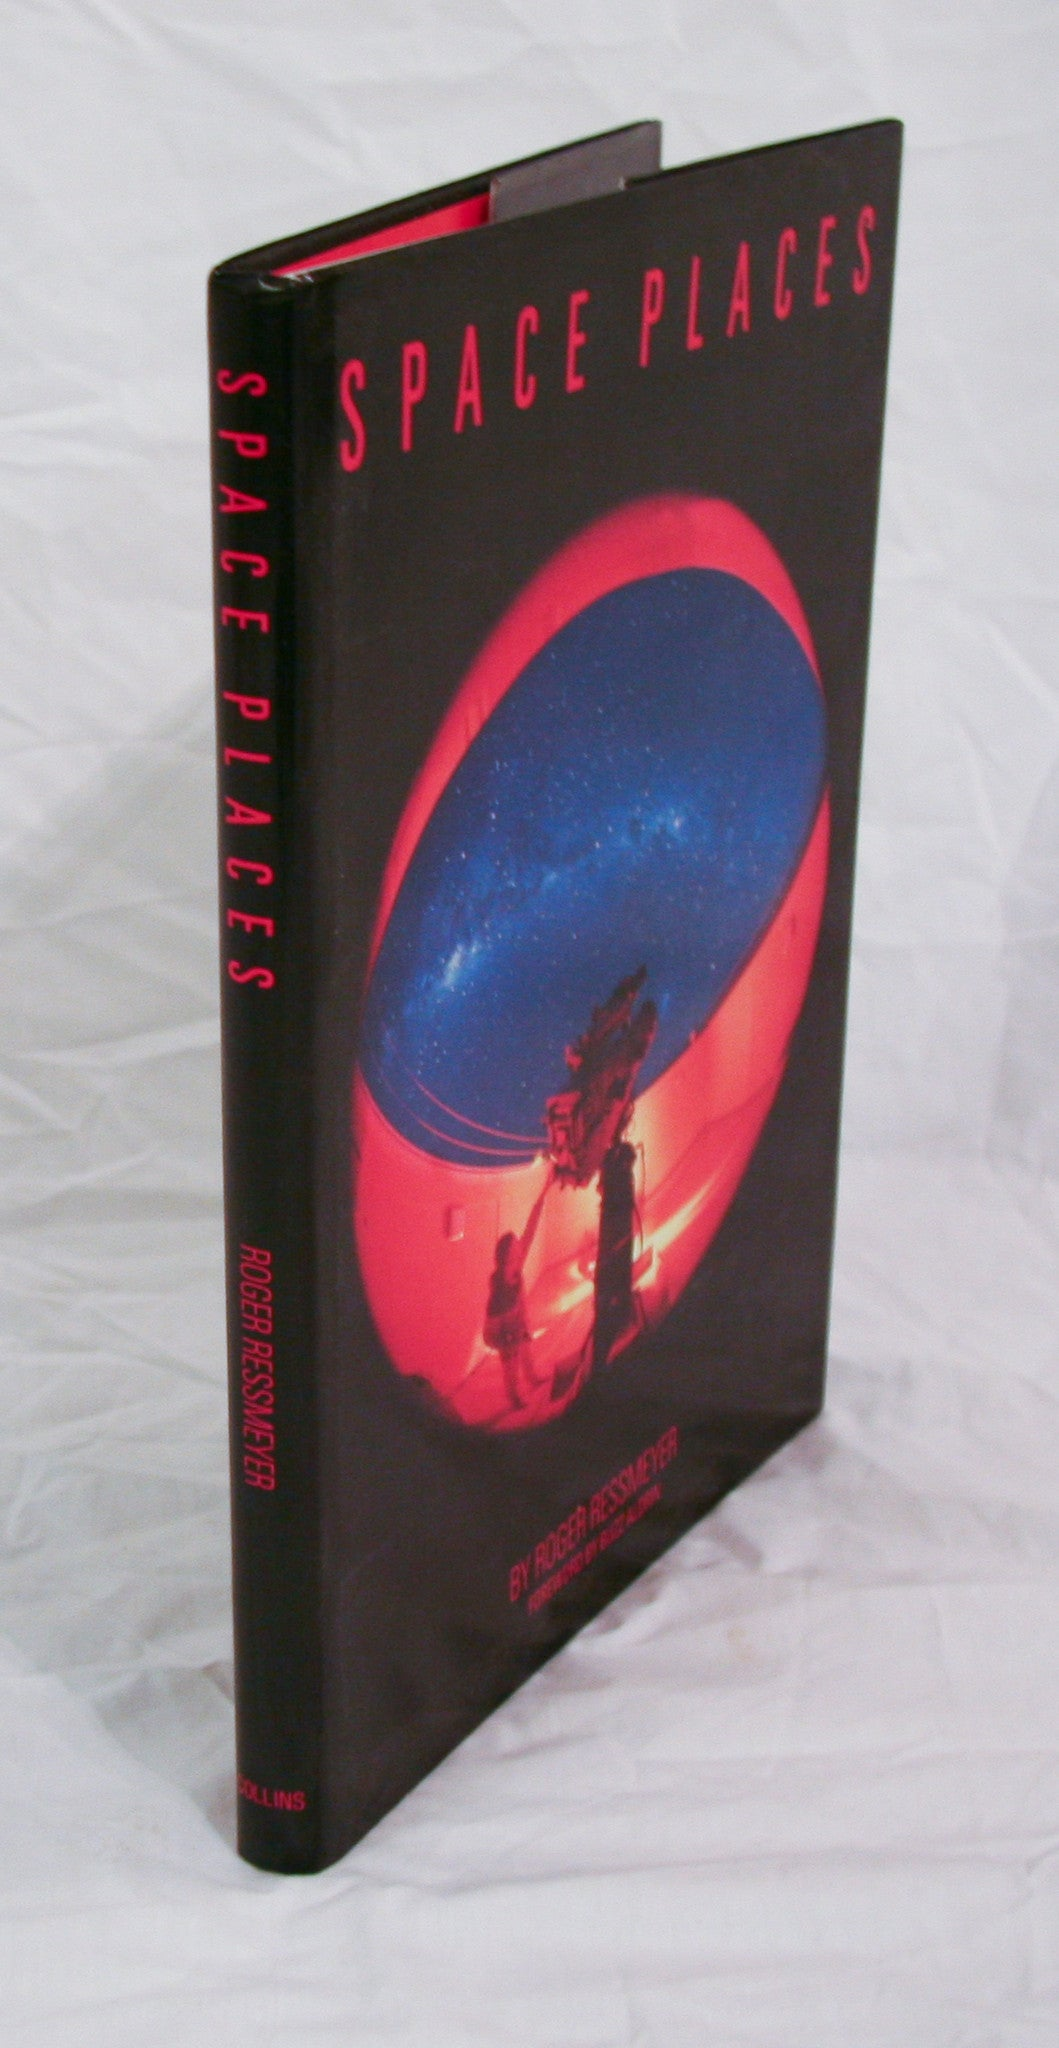 Space Places - Vintage Book